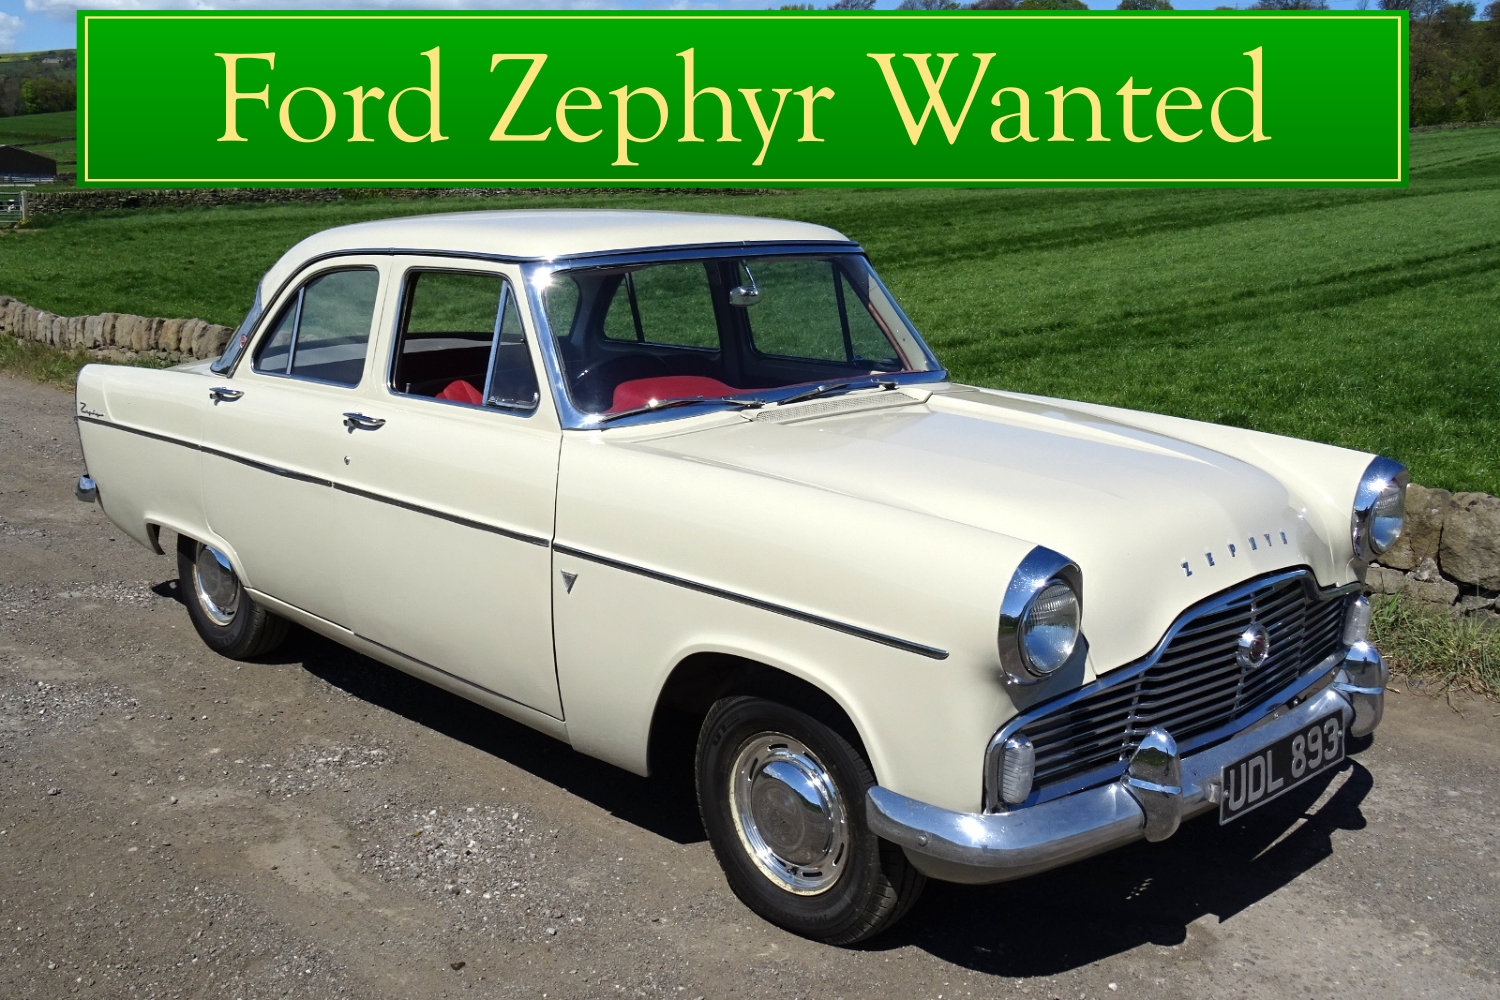 FORD ZODIAC MK2 WANTED, CLASSIC CARS WANTED, INSTANT PAYMENT Wanted (picture 4 of 6)